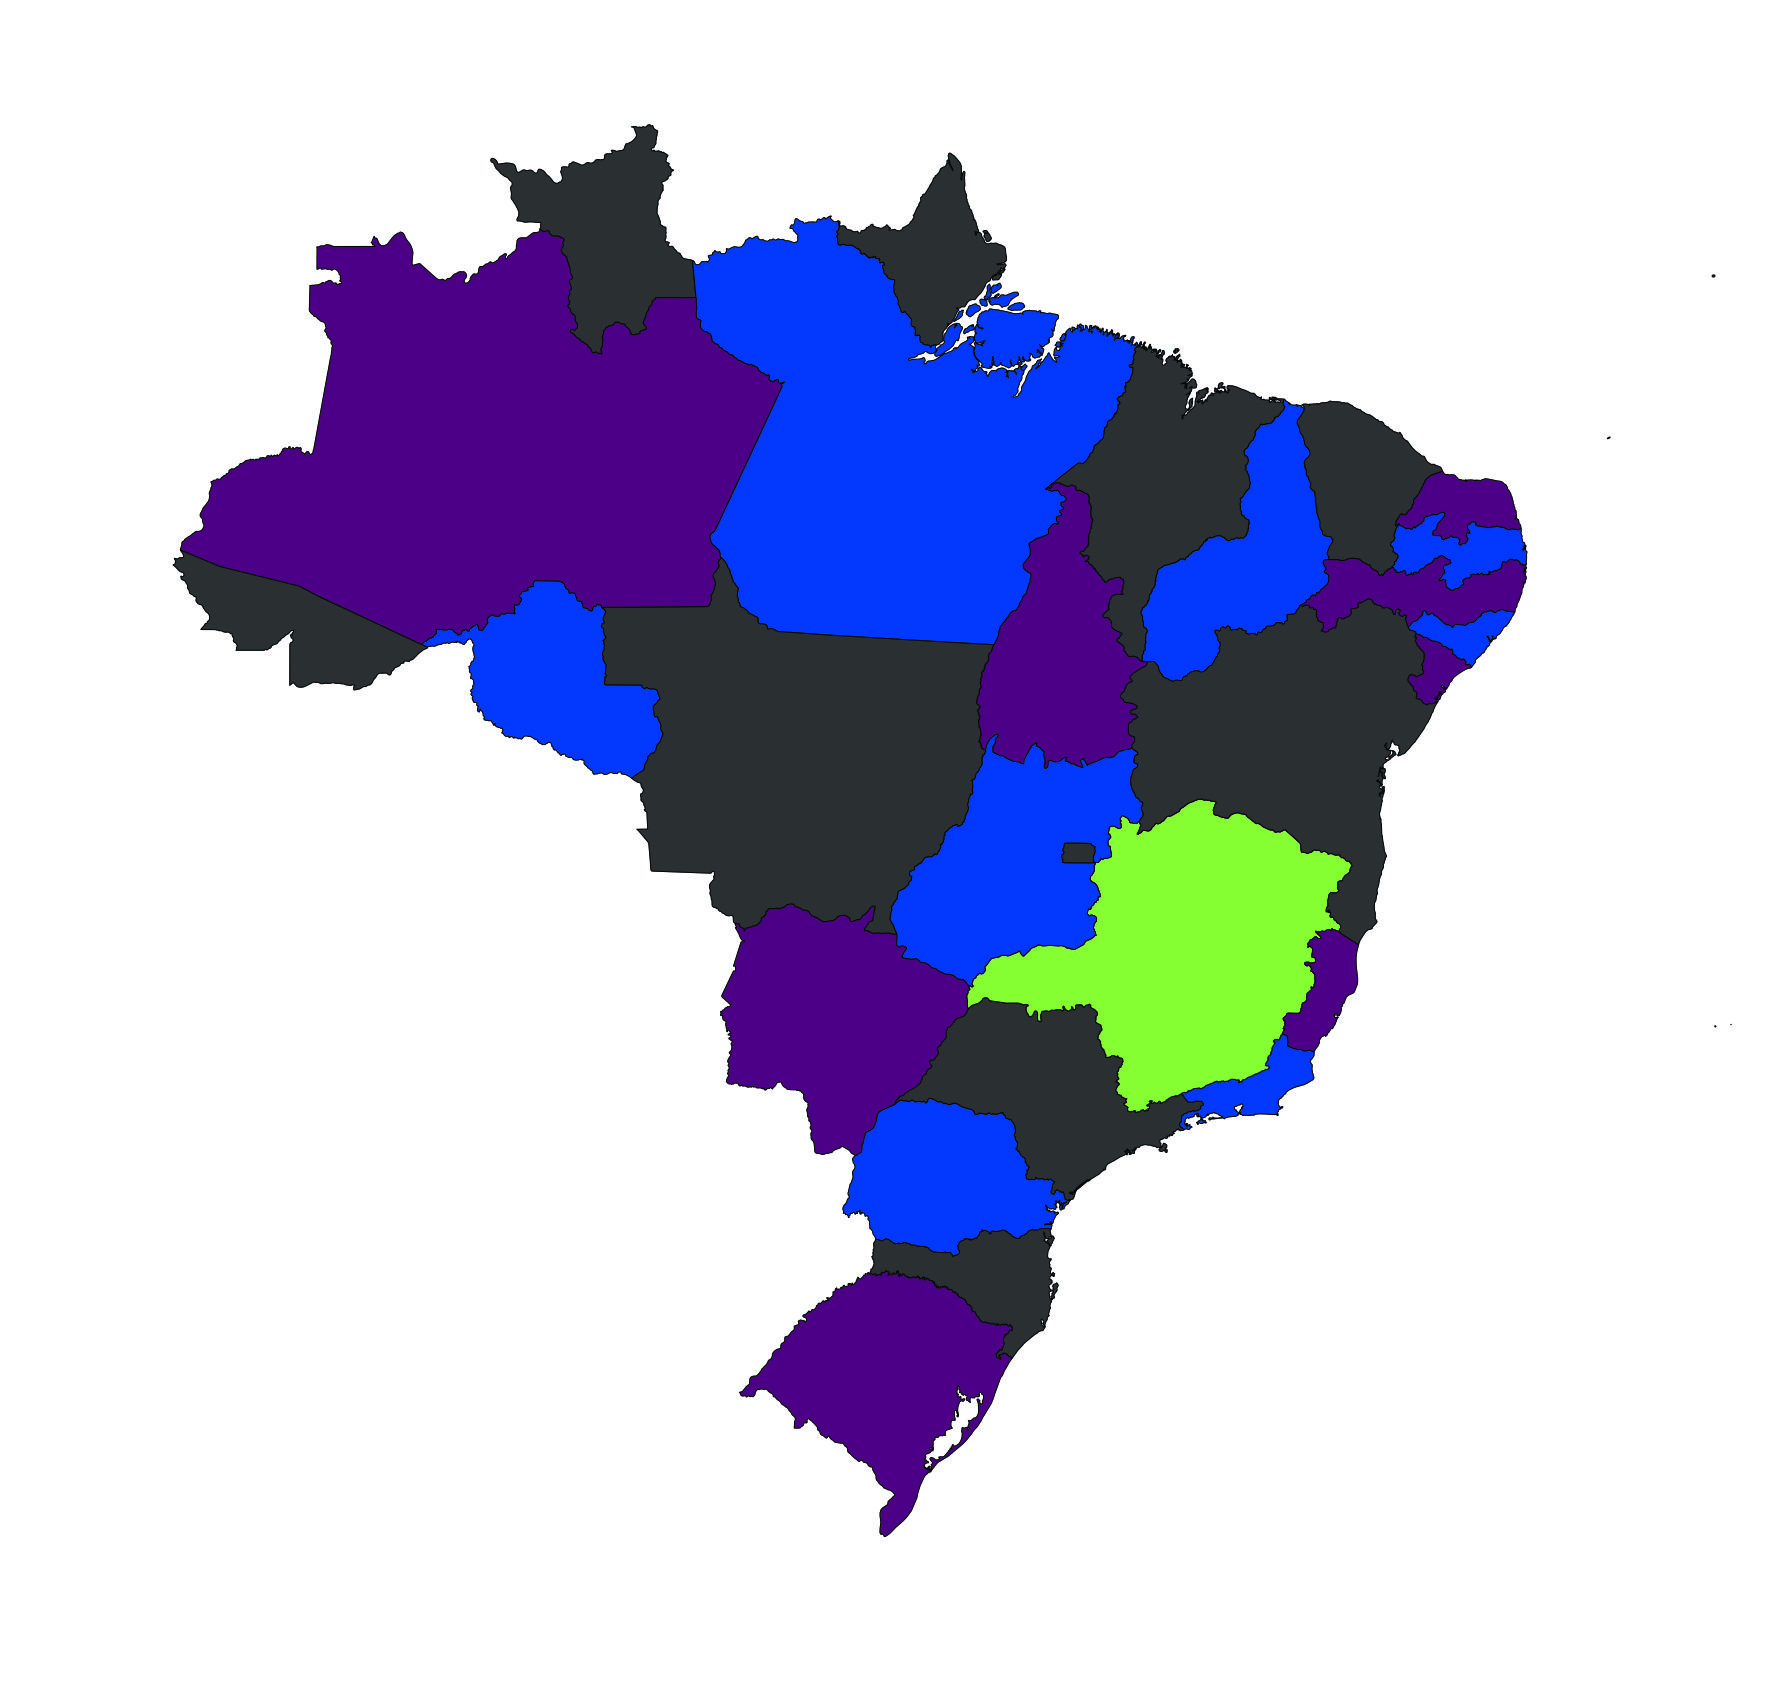 Brazil map colored with four colors